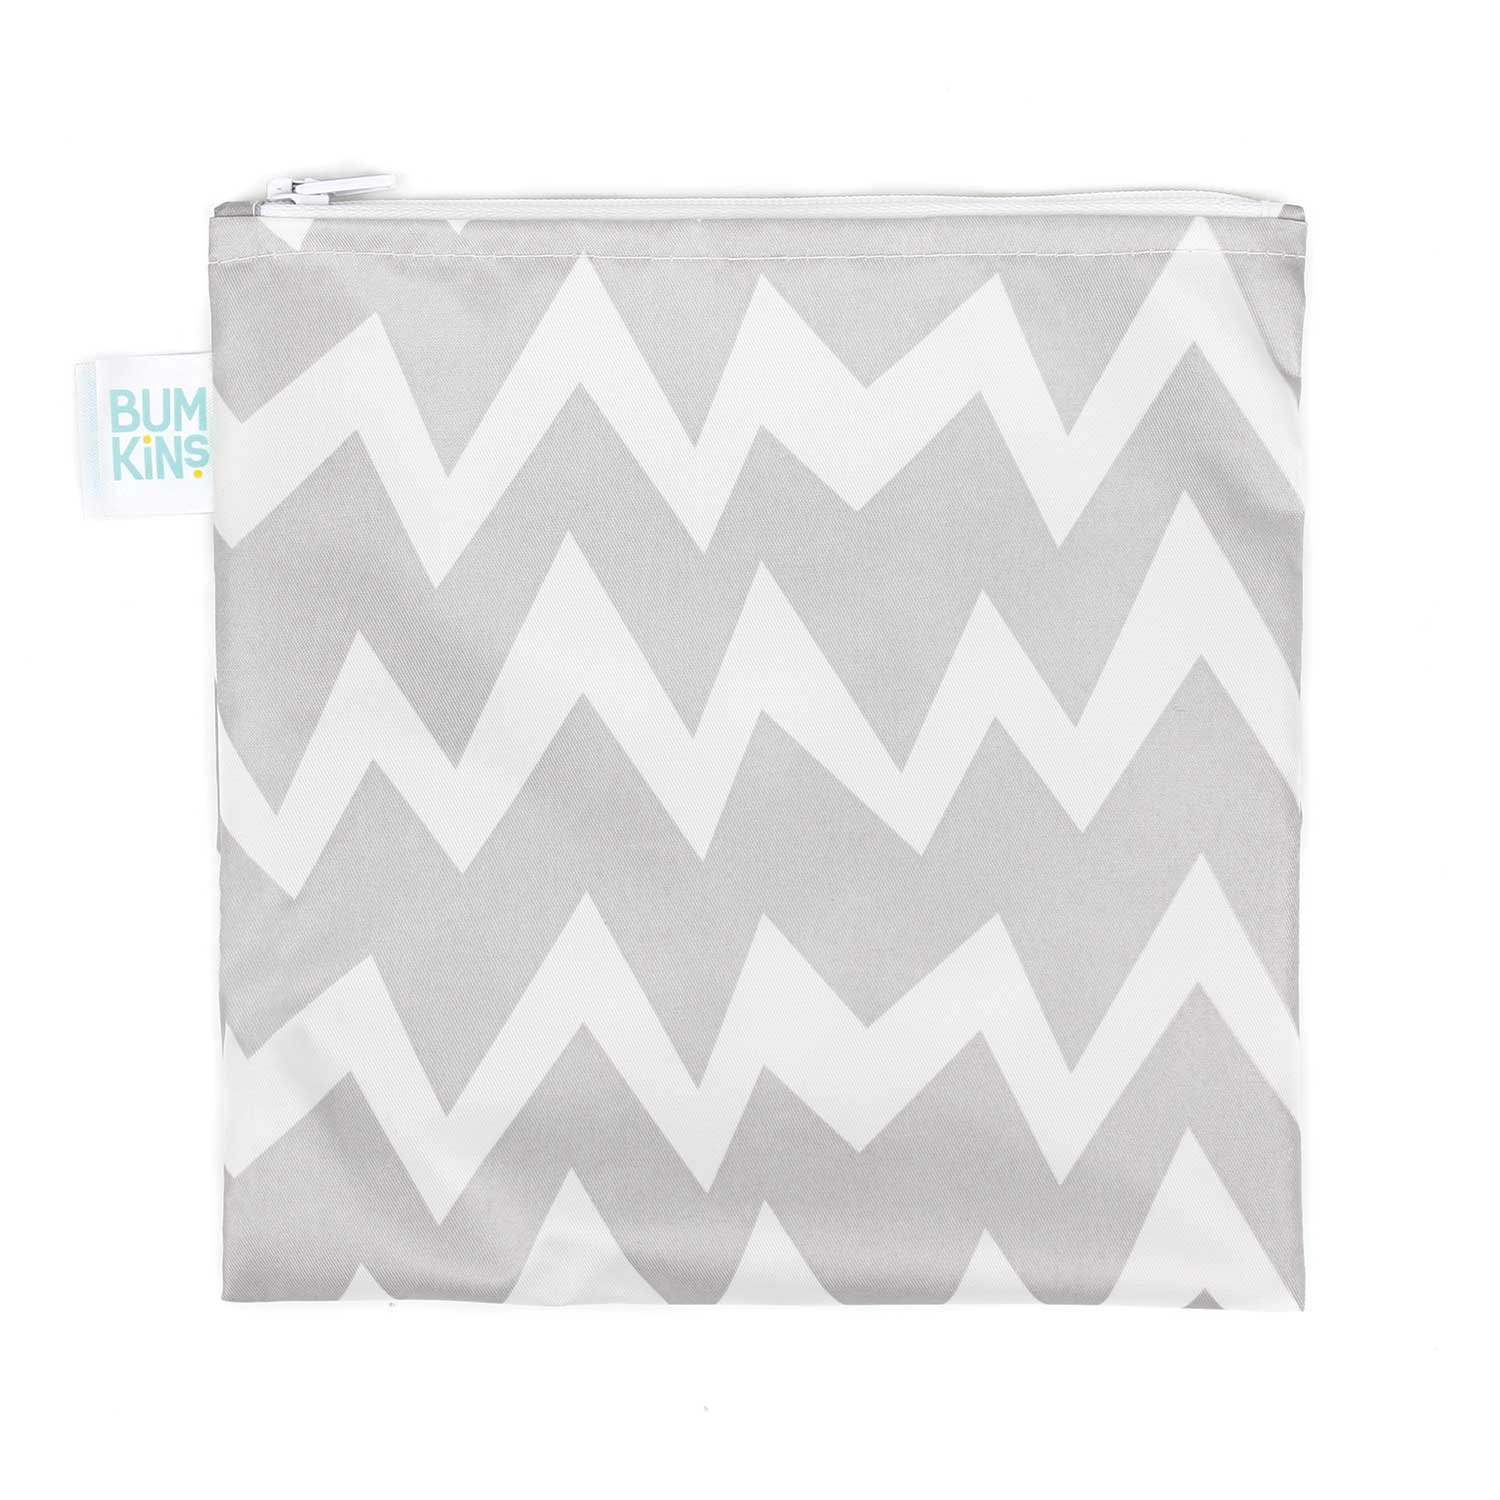 Bumkins Reusable Snack Bag, Large, Gray Chevron SBL-501